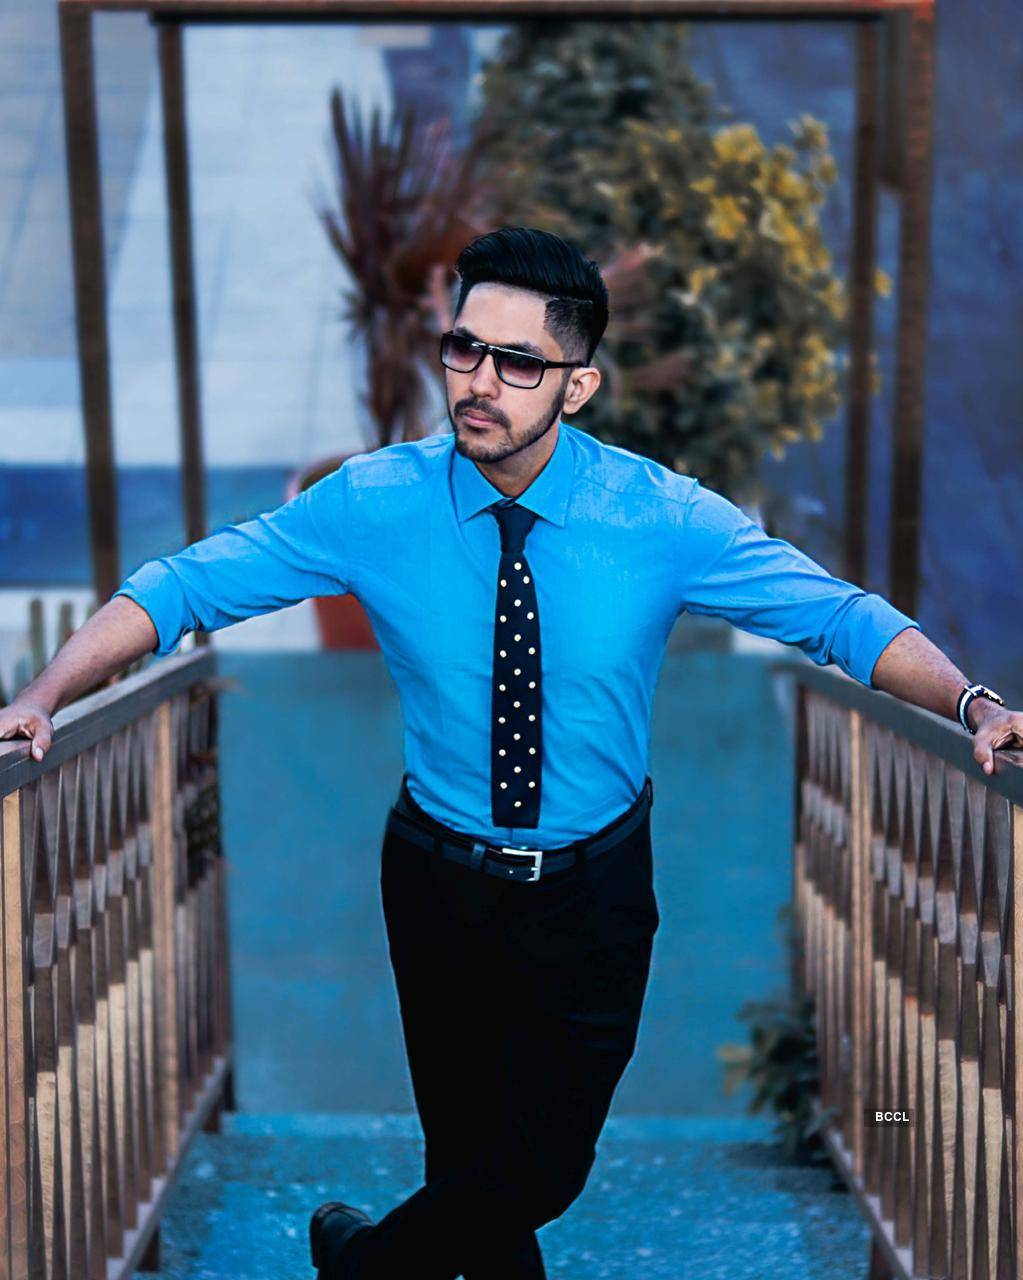 TV actor Kuldeep Singhania looks classy and suave in his latest photoshoots